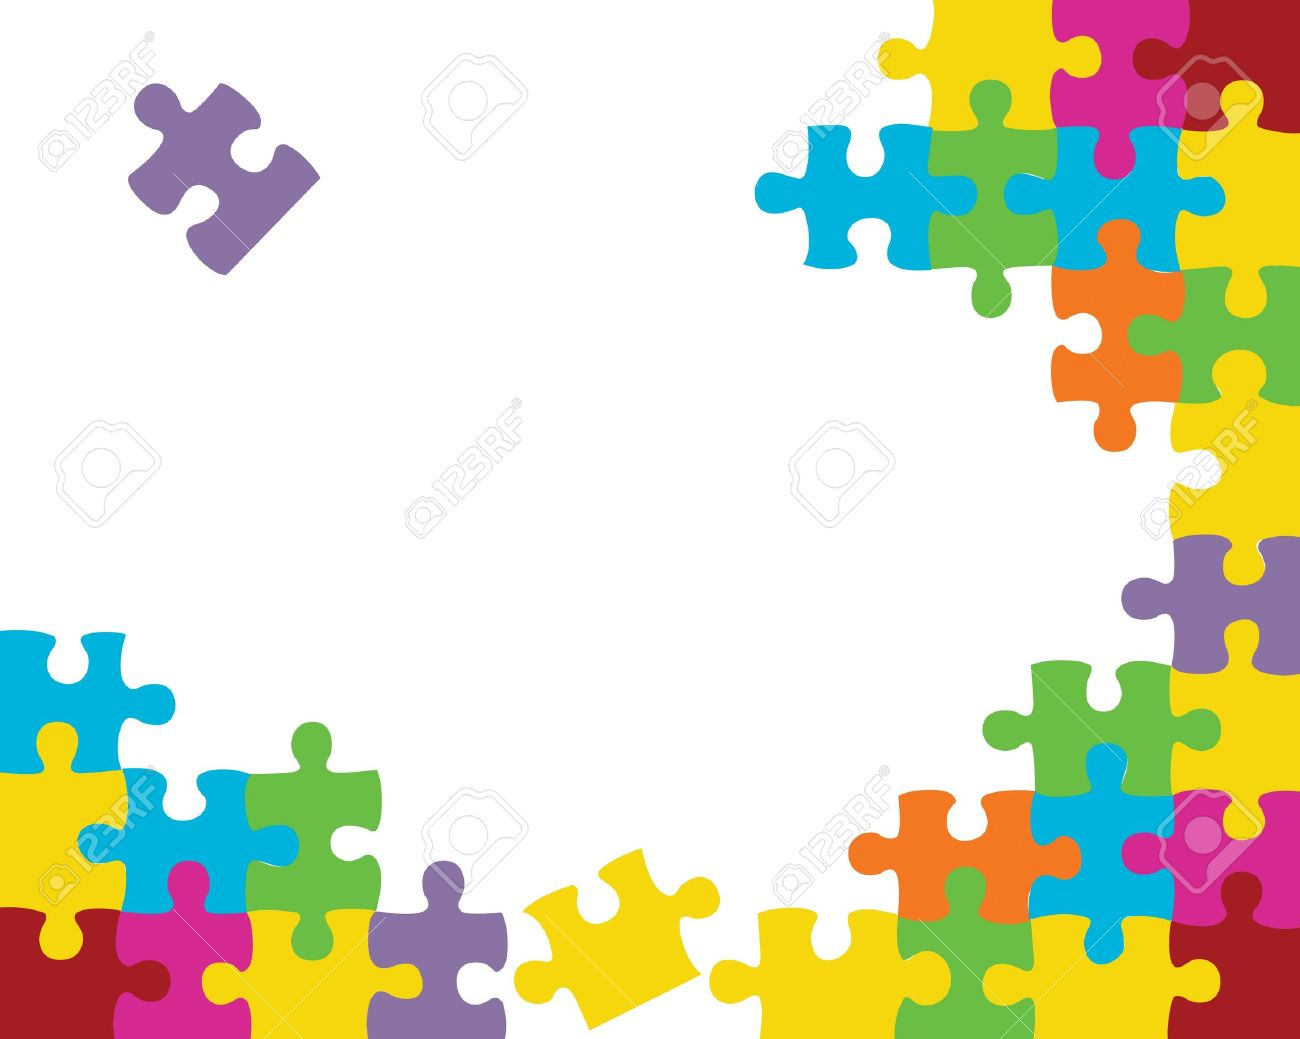 abstract jigsaw puzzle background illustration royalty free